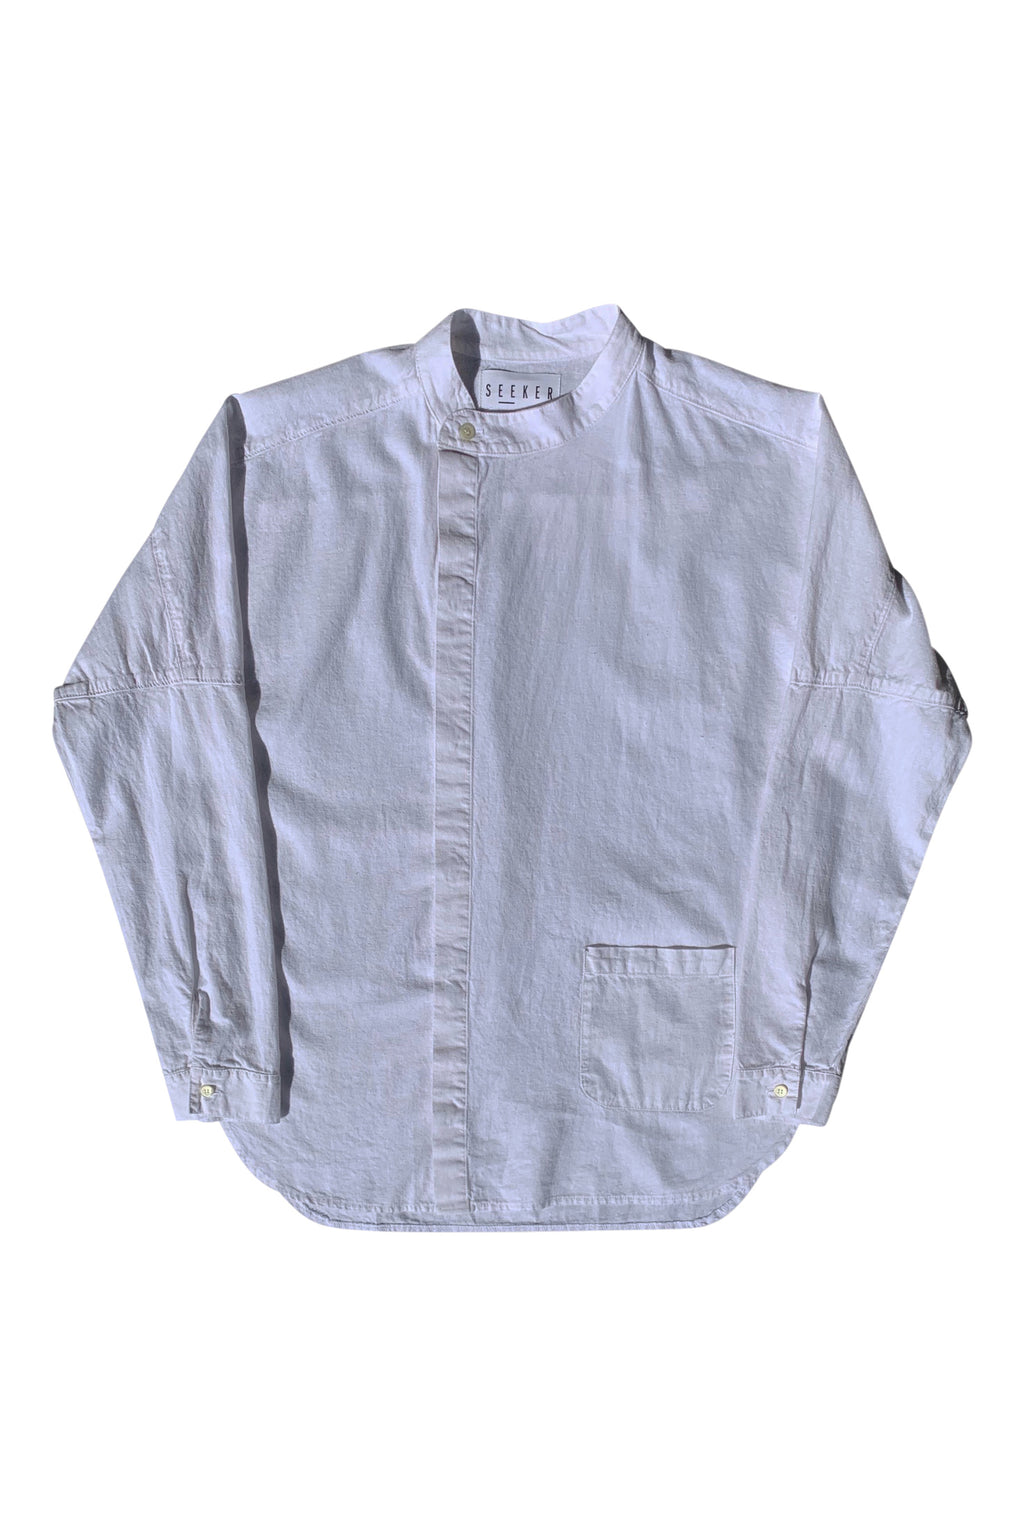 A Sym Button Up in White